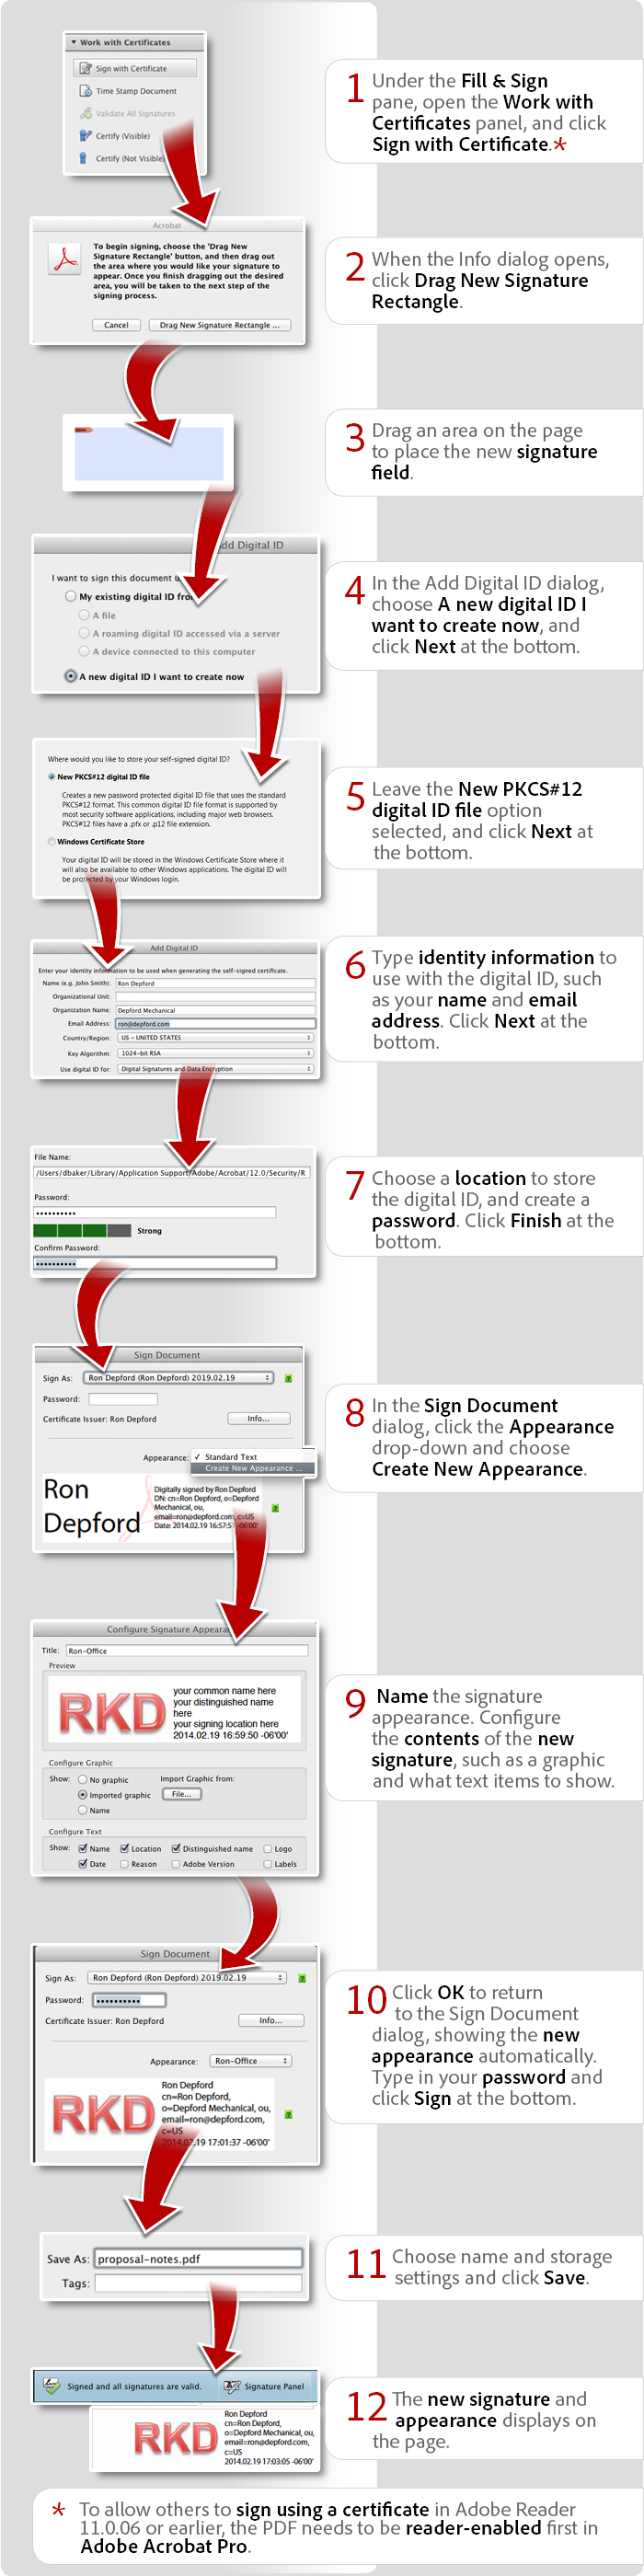 How to sign using a certificate in Acrobat XI and Reader